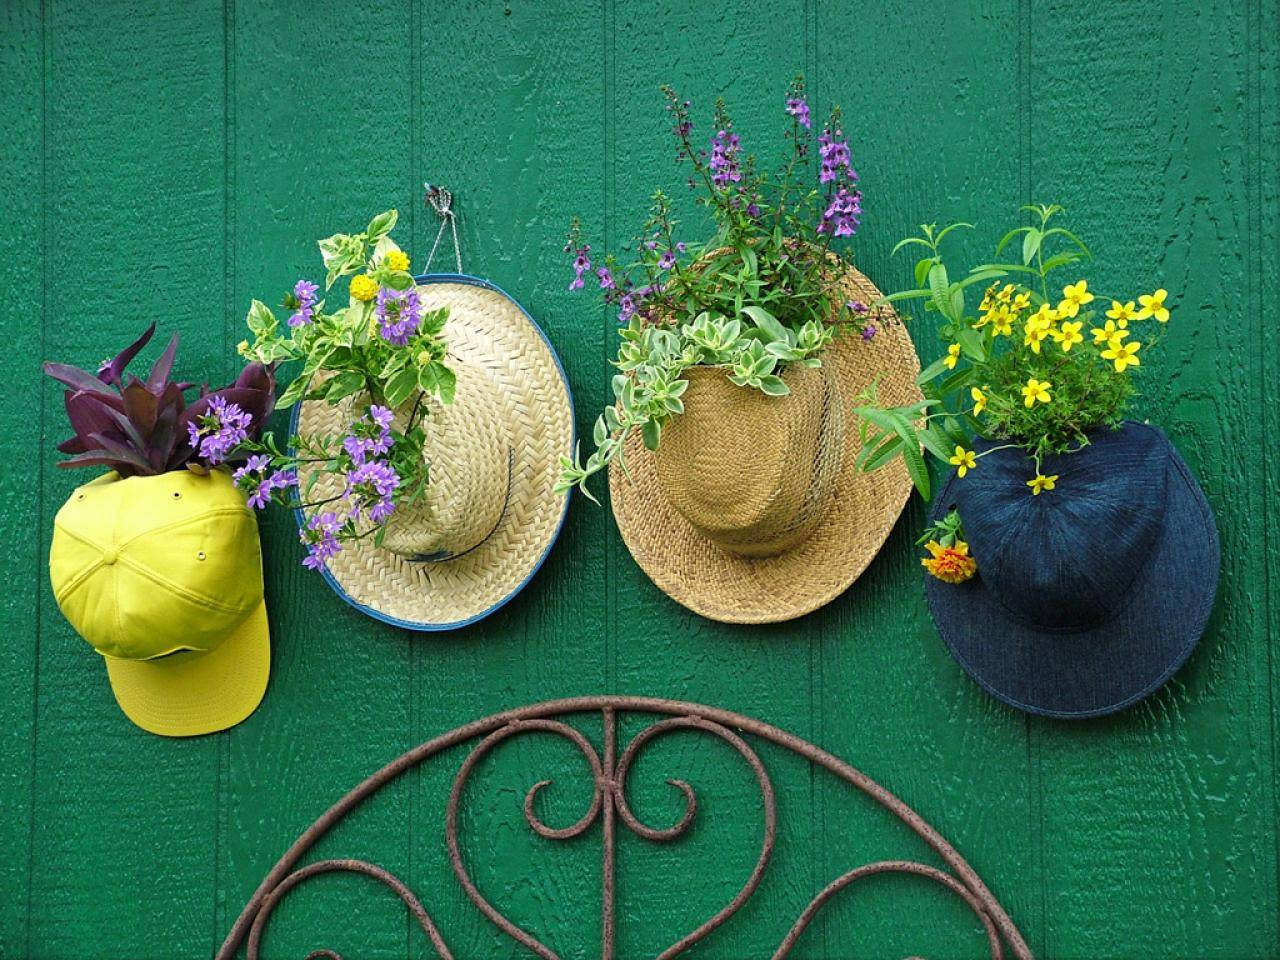 Plants on hats hanging from green wall